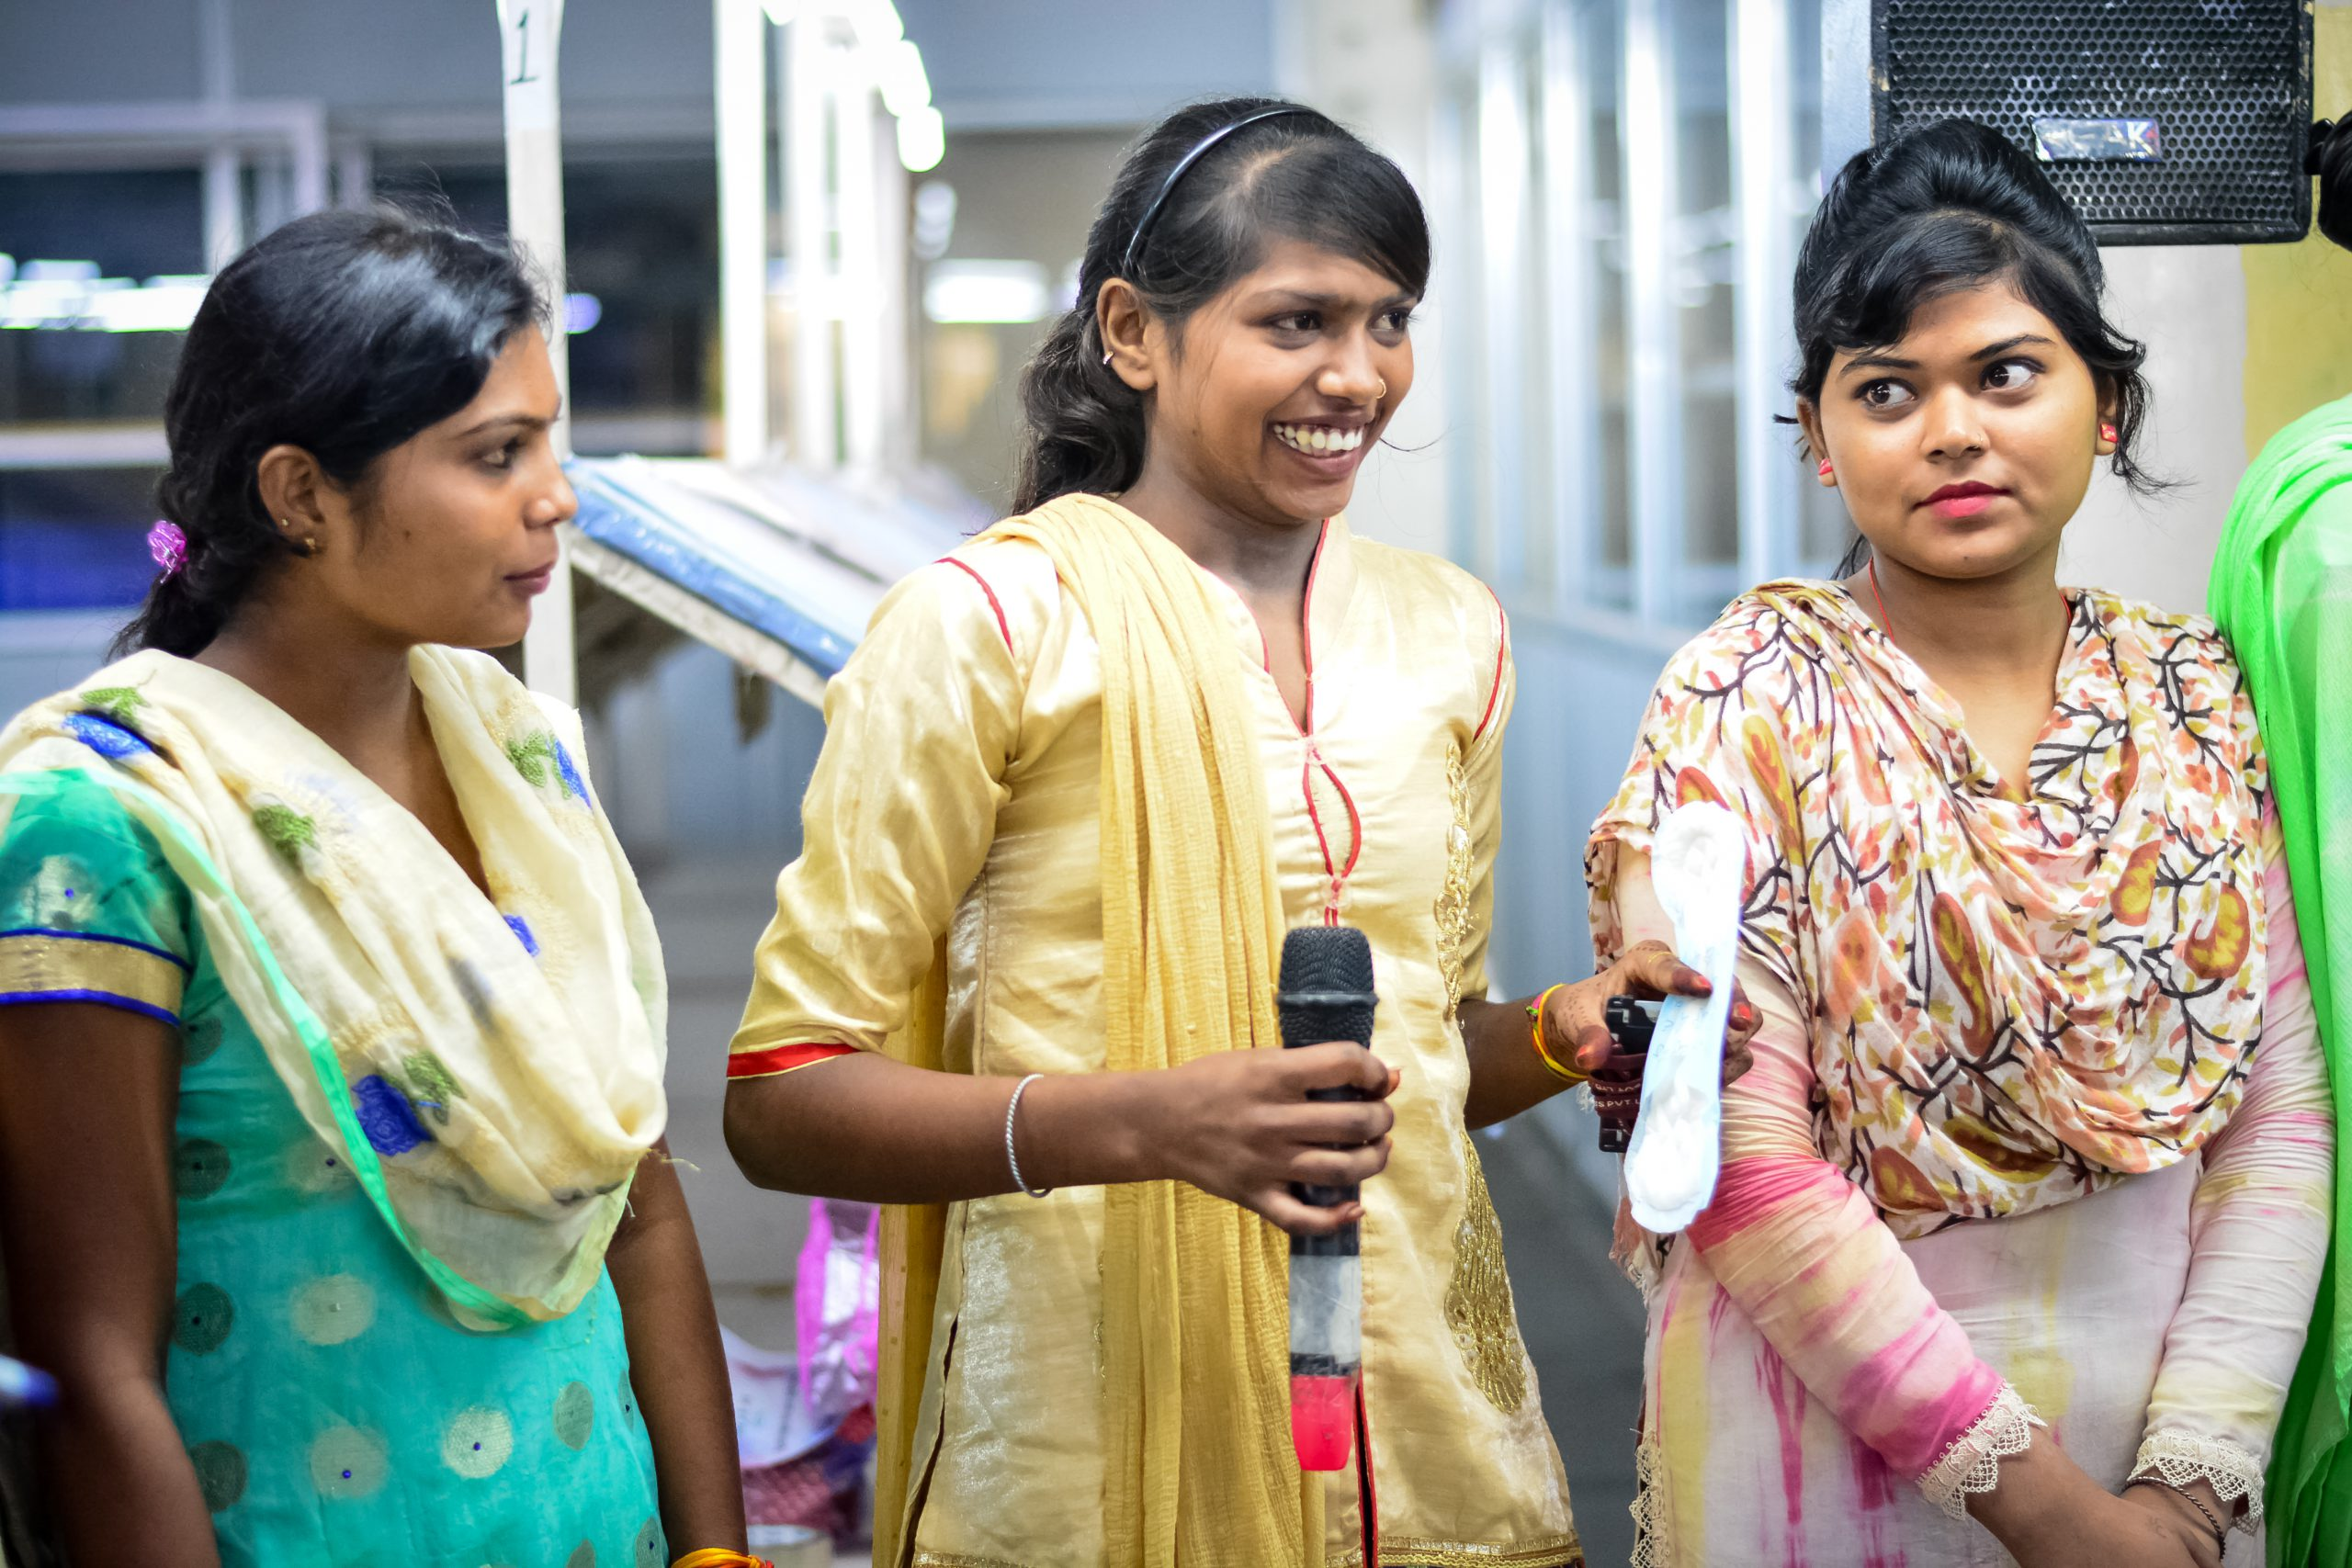 By Women, For Women: How We Co-created A Menstrual Hygiene Management Program With Our Female Workforce